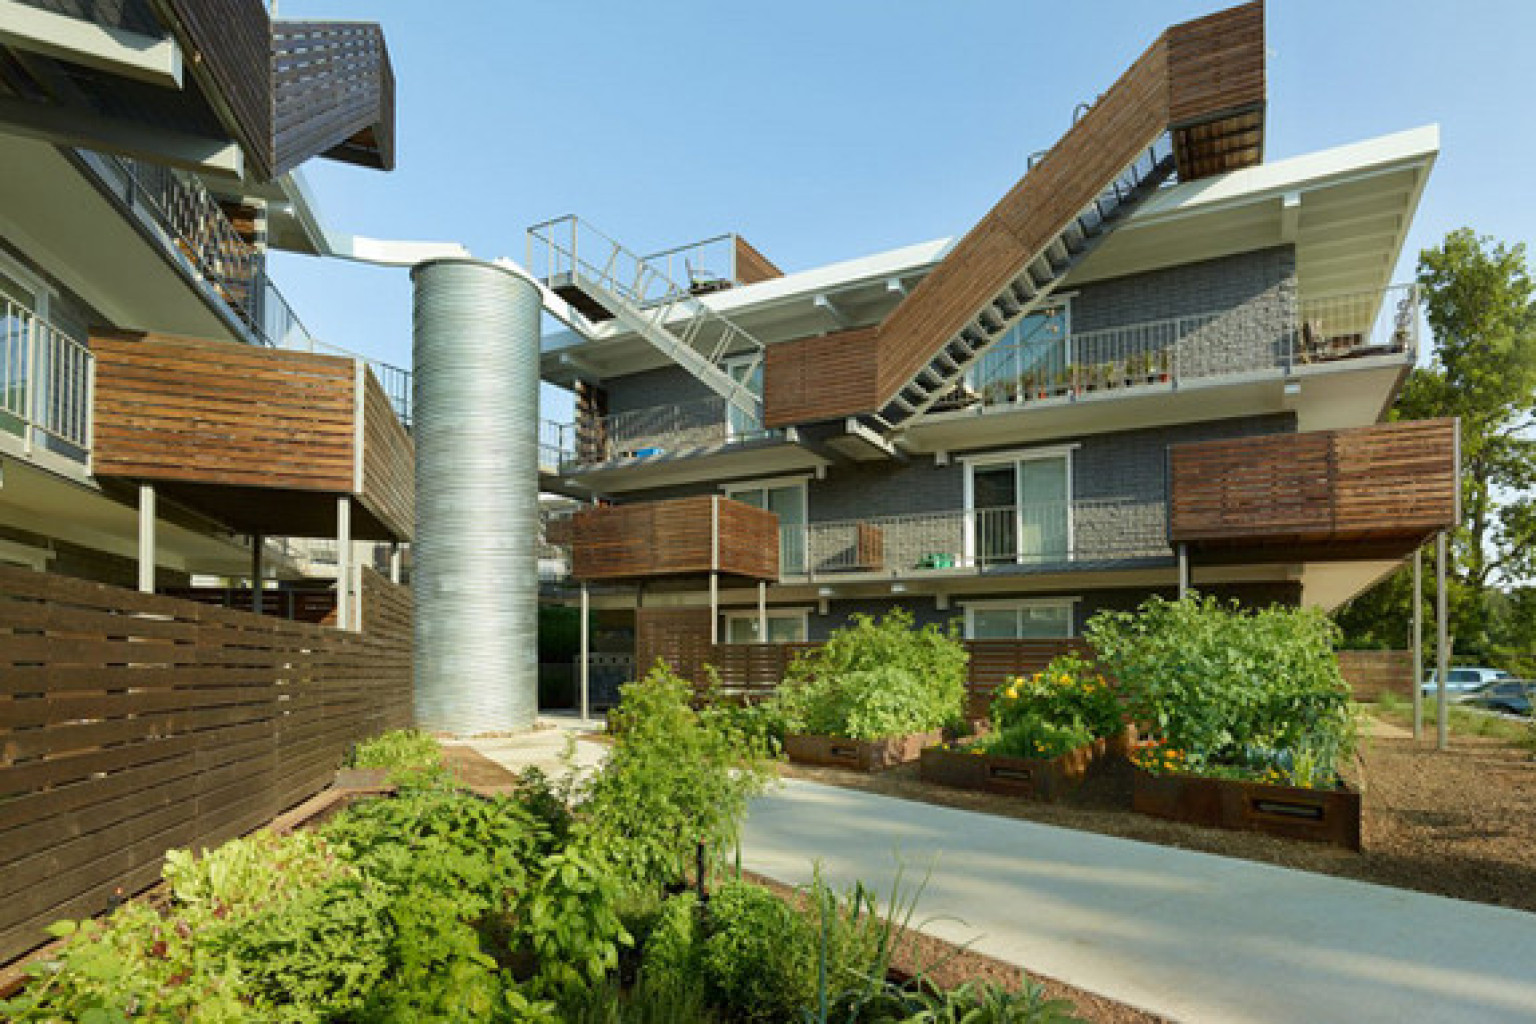 Sustainable Green Homes sustainable architecture: 5 reasons to love green buildings | huffpost